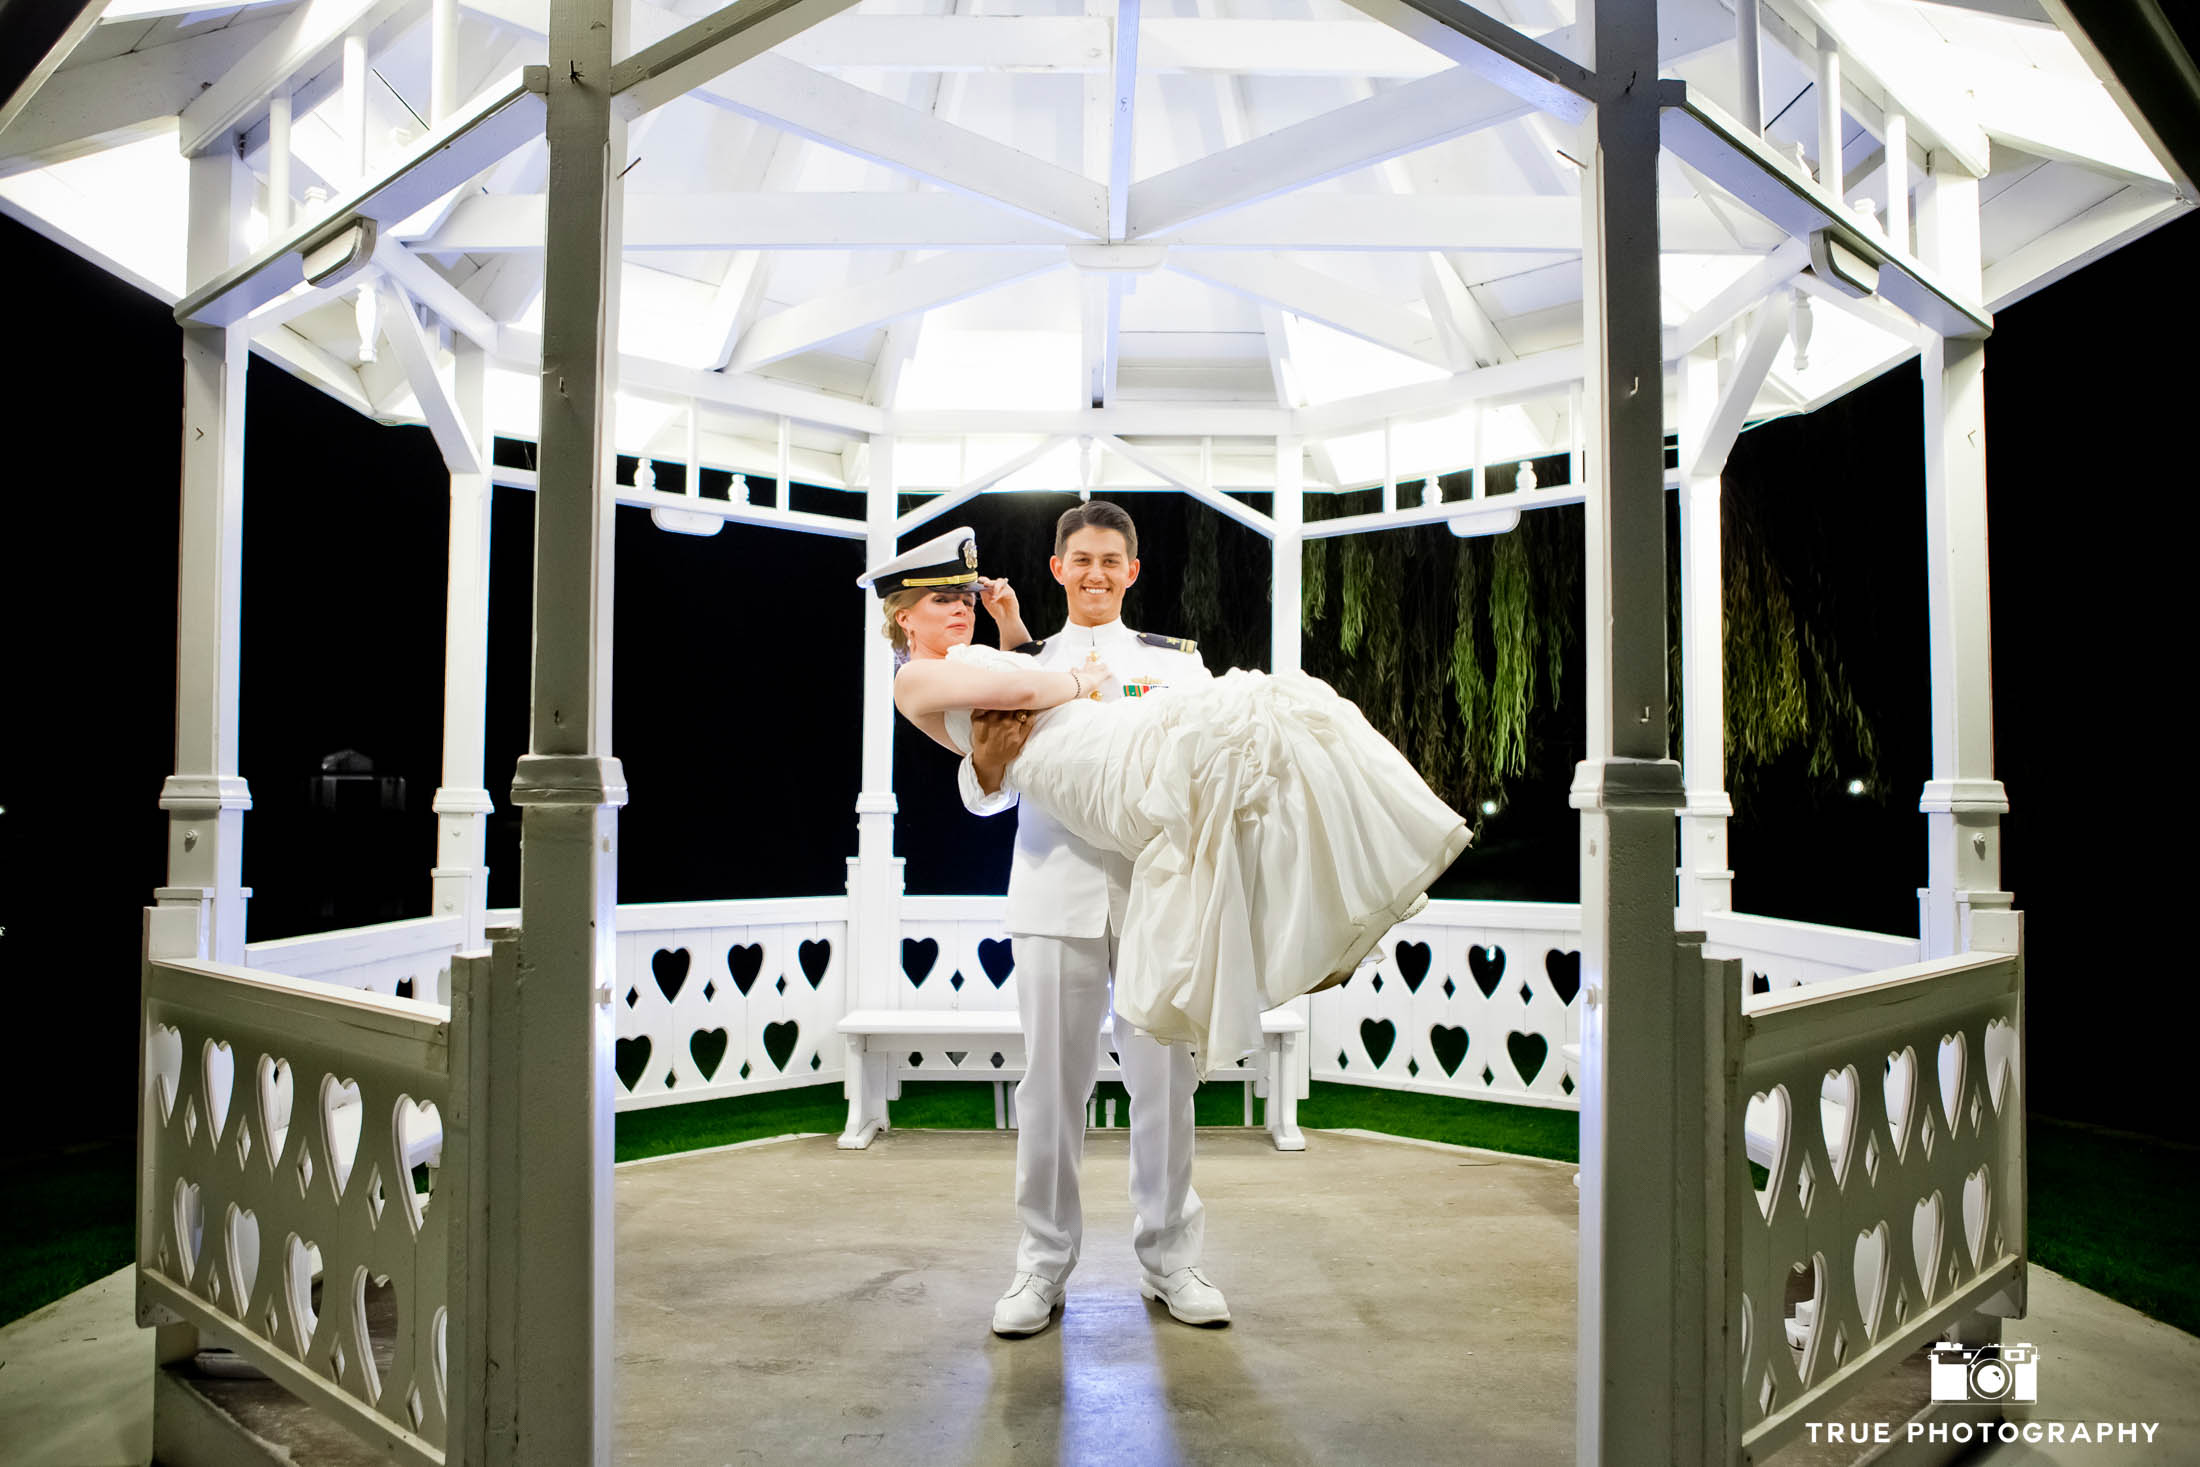 Military Groom picks up Bride for fun wedding couple portrait under white gazebo